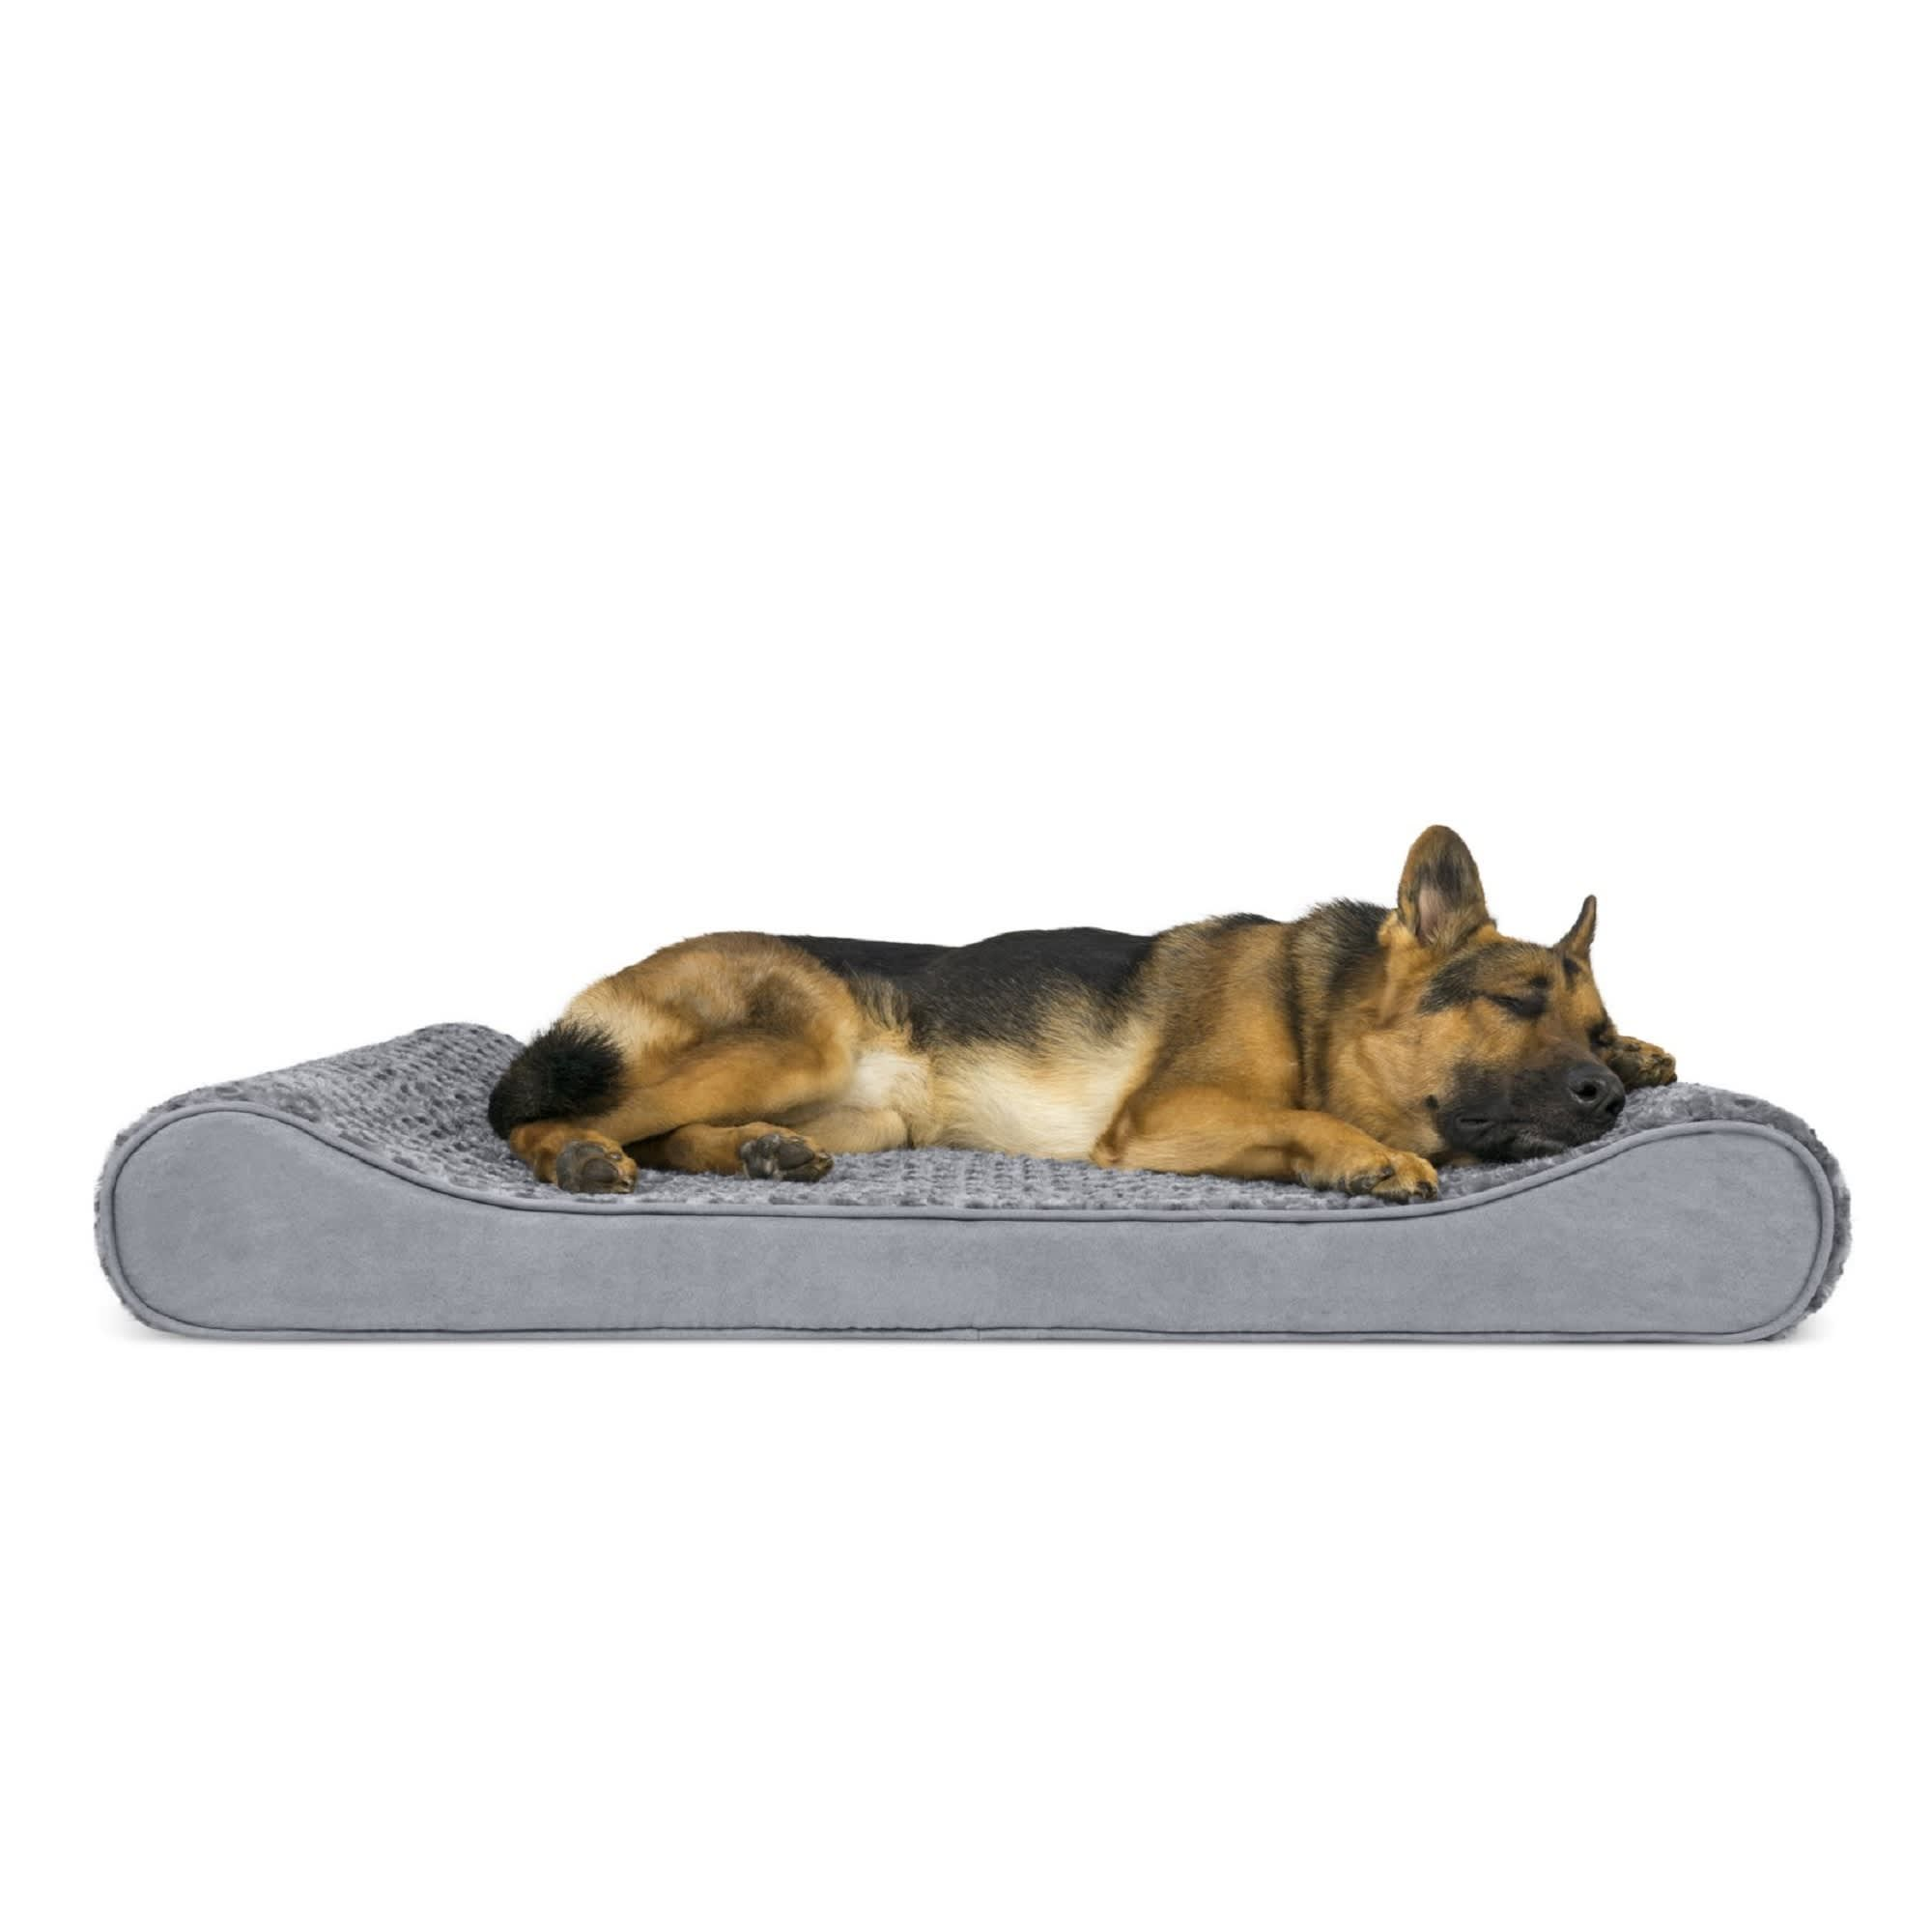 Furhaven Ultra Plush Luxe Lounger Orthopedic Dog Bed Gray 30 L X 45 W Petco Dog Pet Beds Orthopedic Pet Bed Dog Bed Large